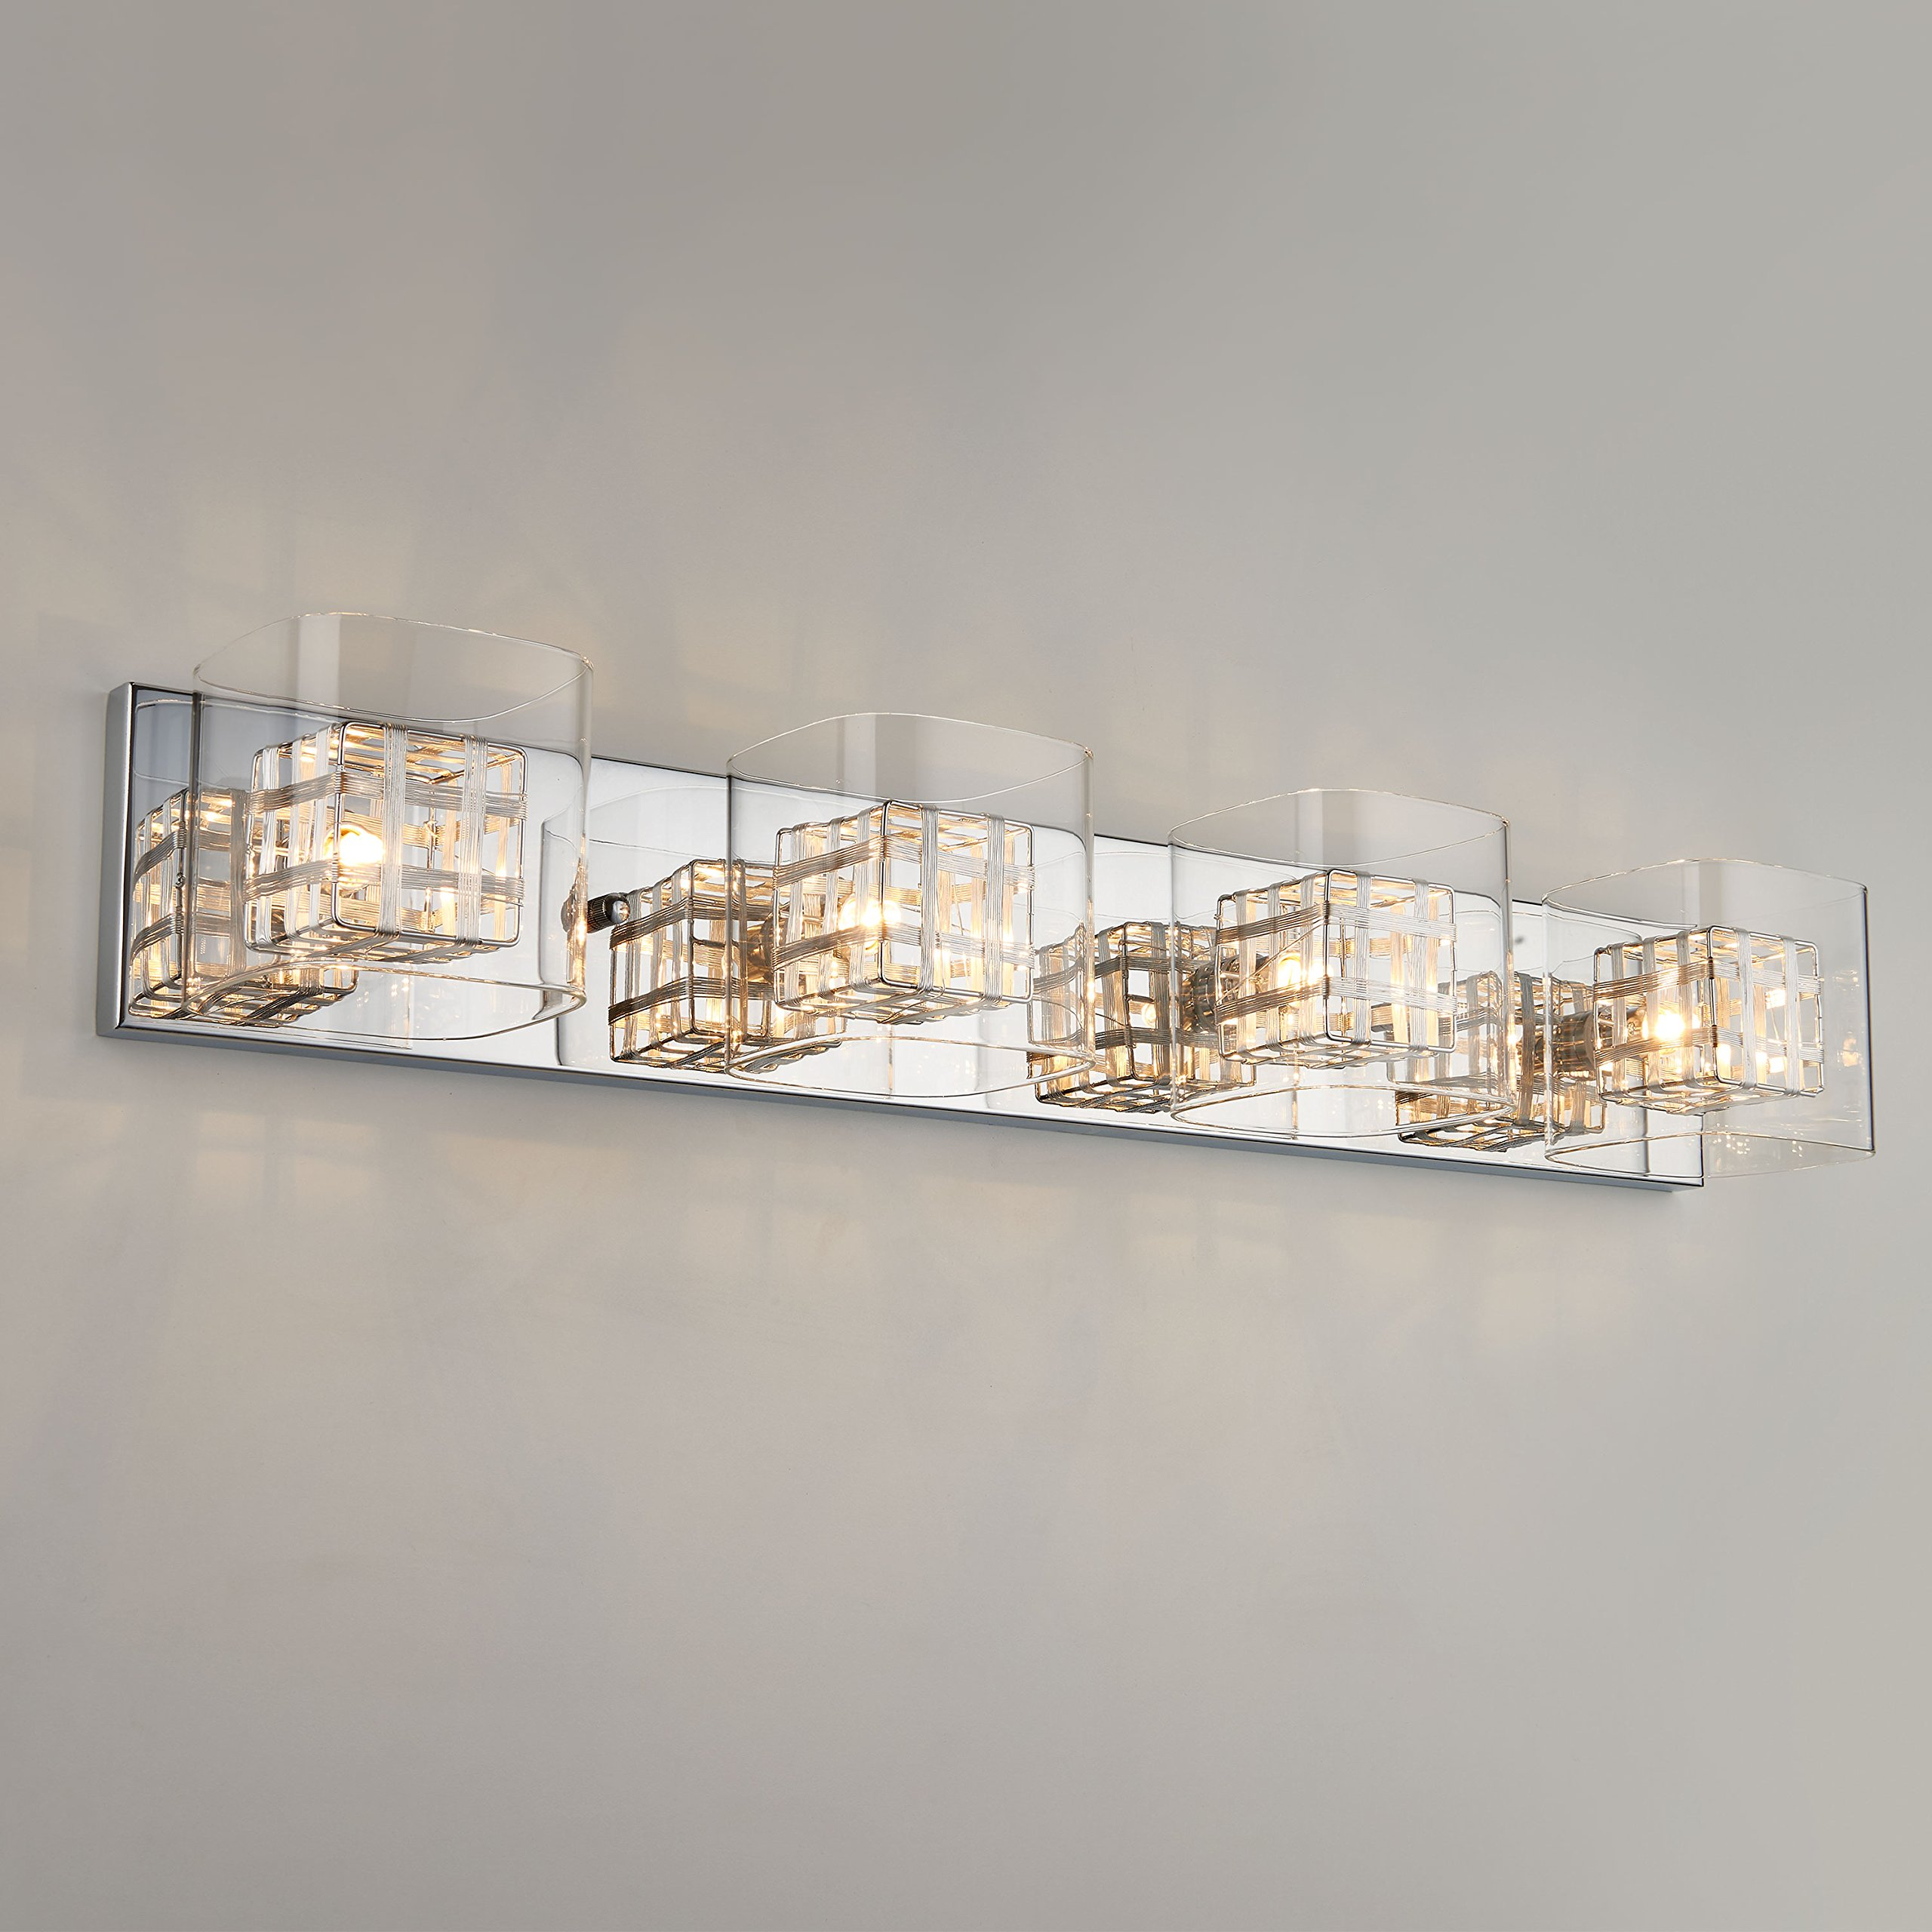 Artika VAN4M-HD1 Metropolitan 4-Light Bulbs, 30-inches Wall Fixture with Dimmable Light and a Chrome Finish by Artika (Image #3)